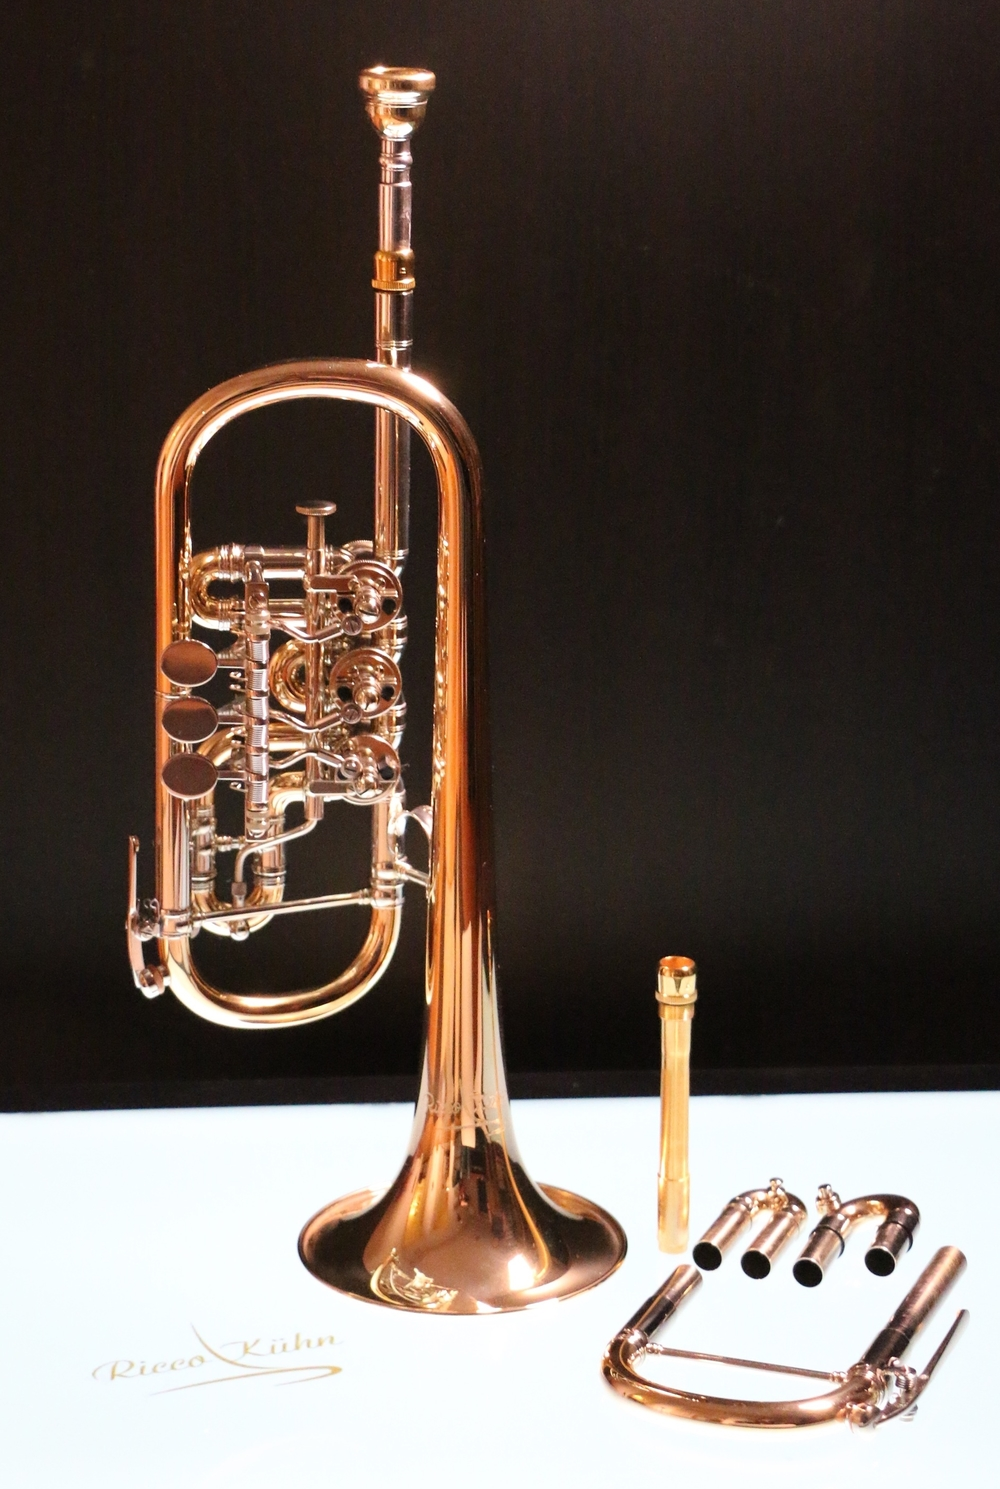 Technical data  bell gold brass 120mm (4.72 in) exchangeable leadpipe bronze valves 2 water keys trigger at 3rd slide playable with optional D set as a high quality D trumpet